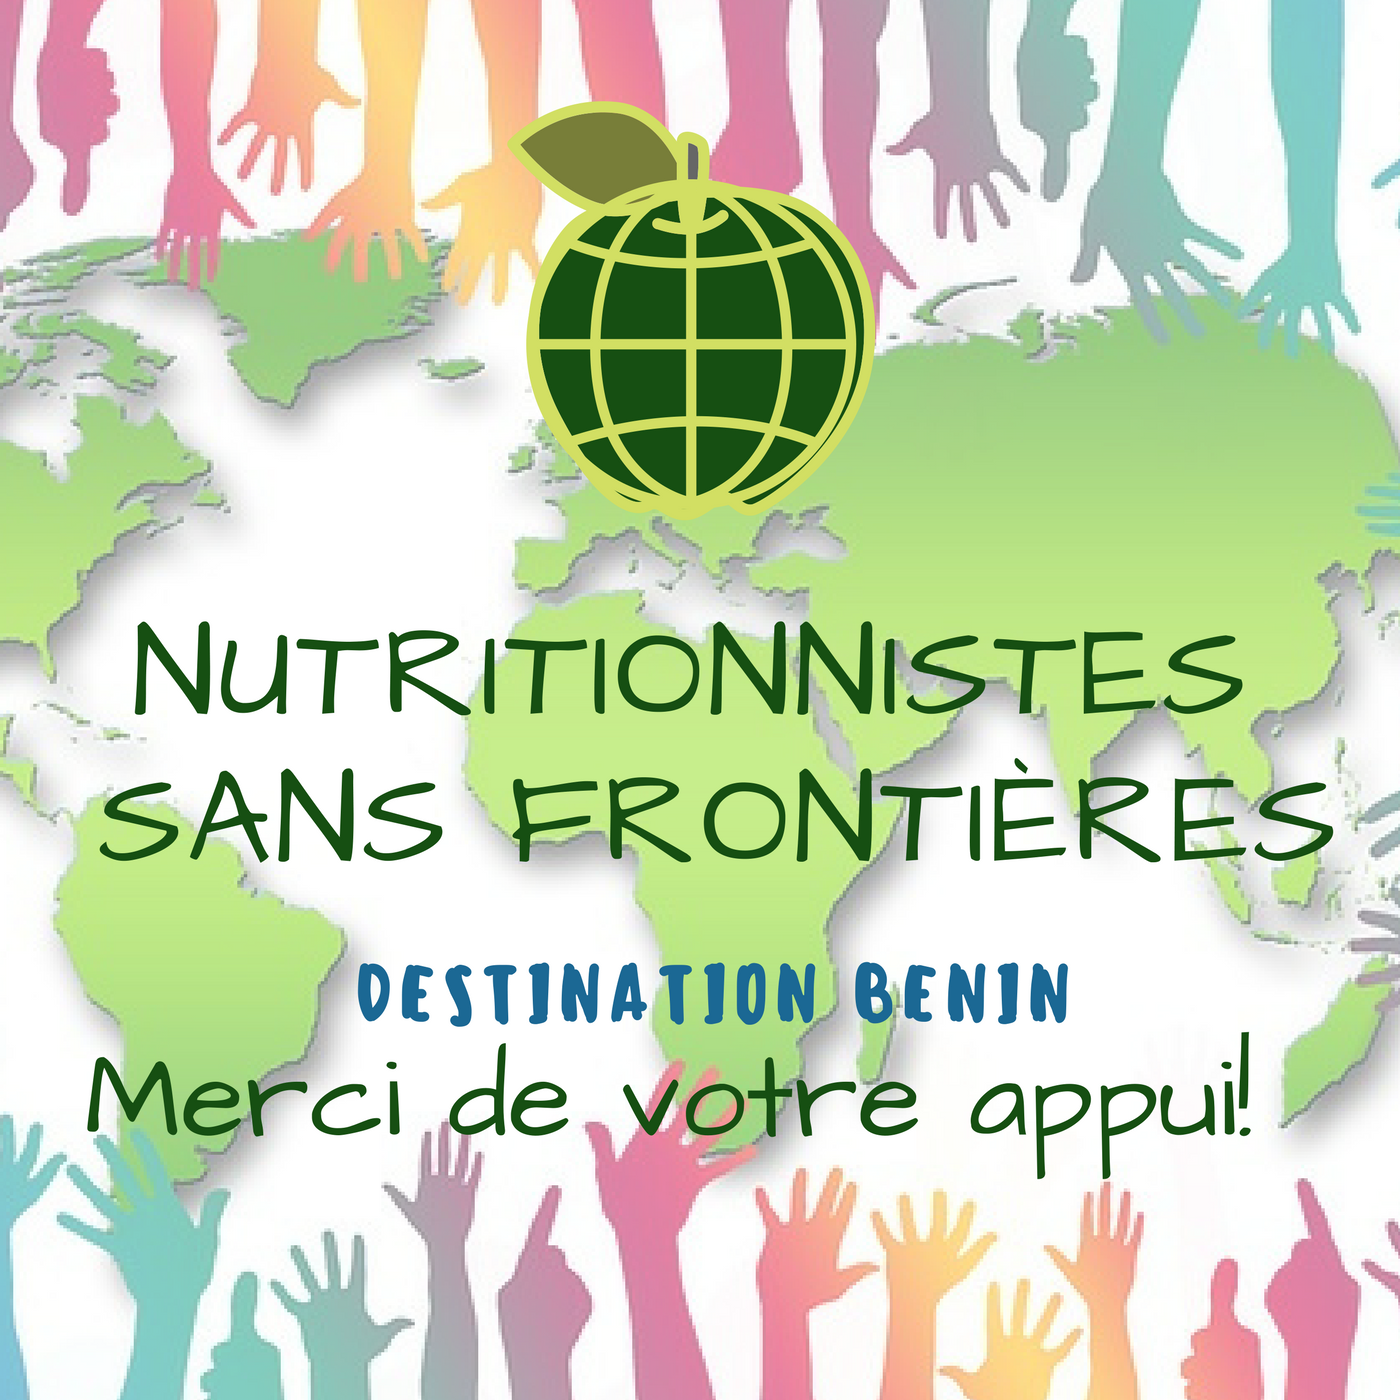 La coalition nutritionnistes sans fronti res mission for Conception cuisine sart saint laurent